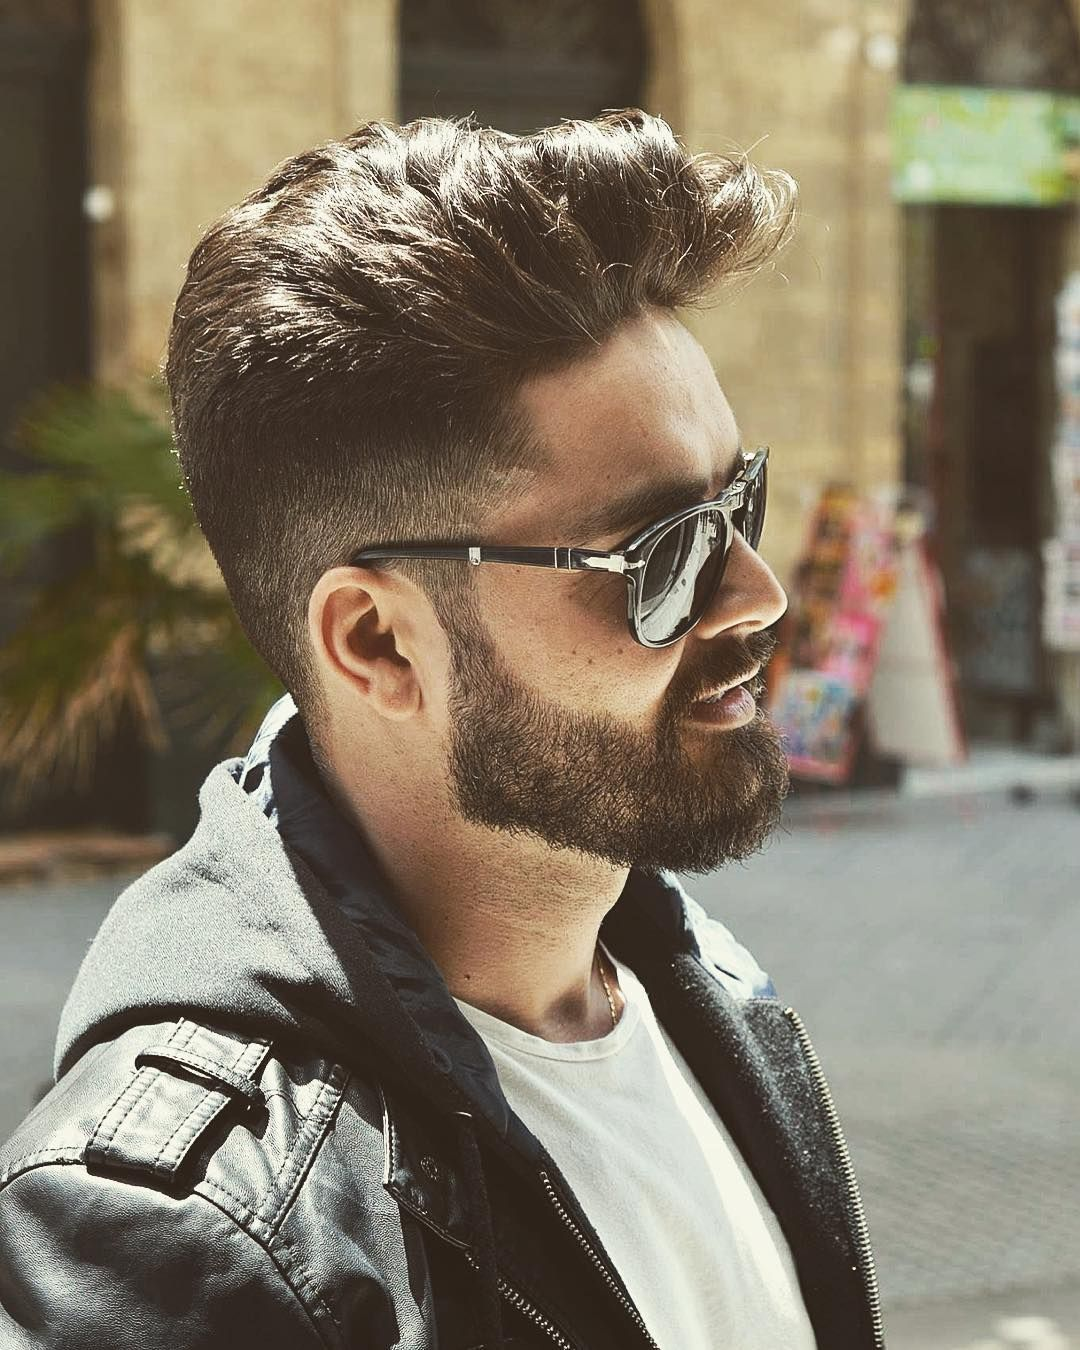 Mens haircuts with beards haircut by virogasrber ifttydrb menshair